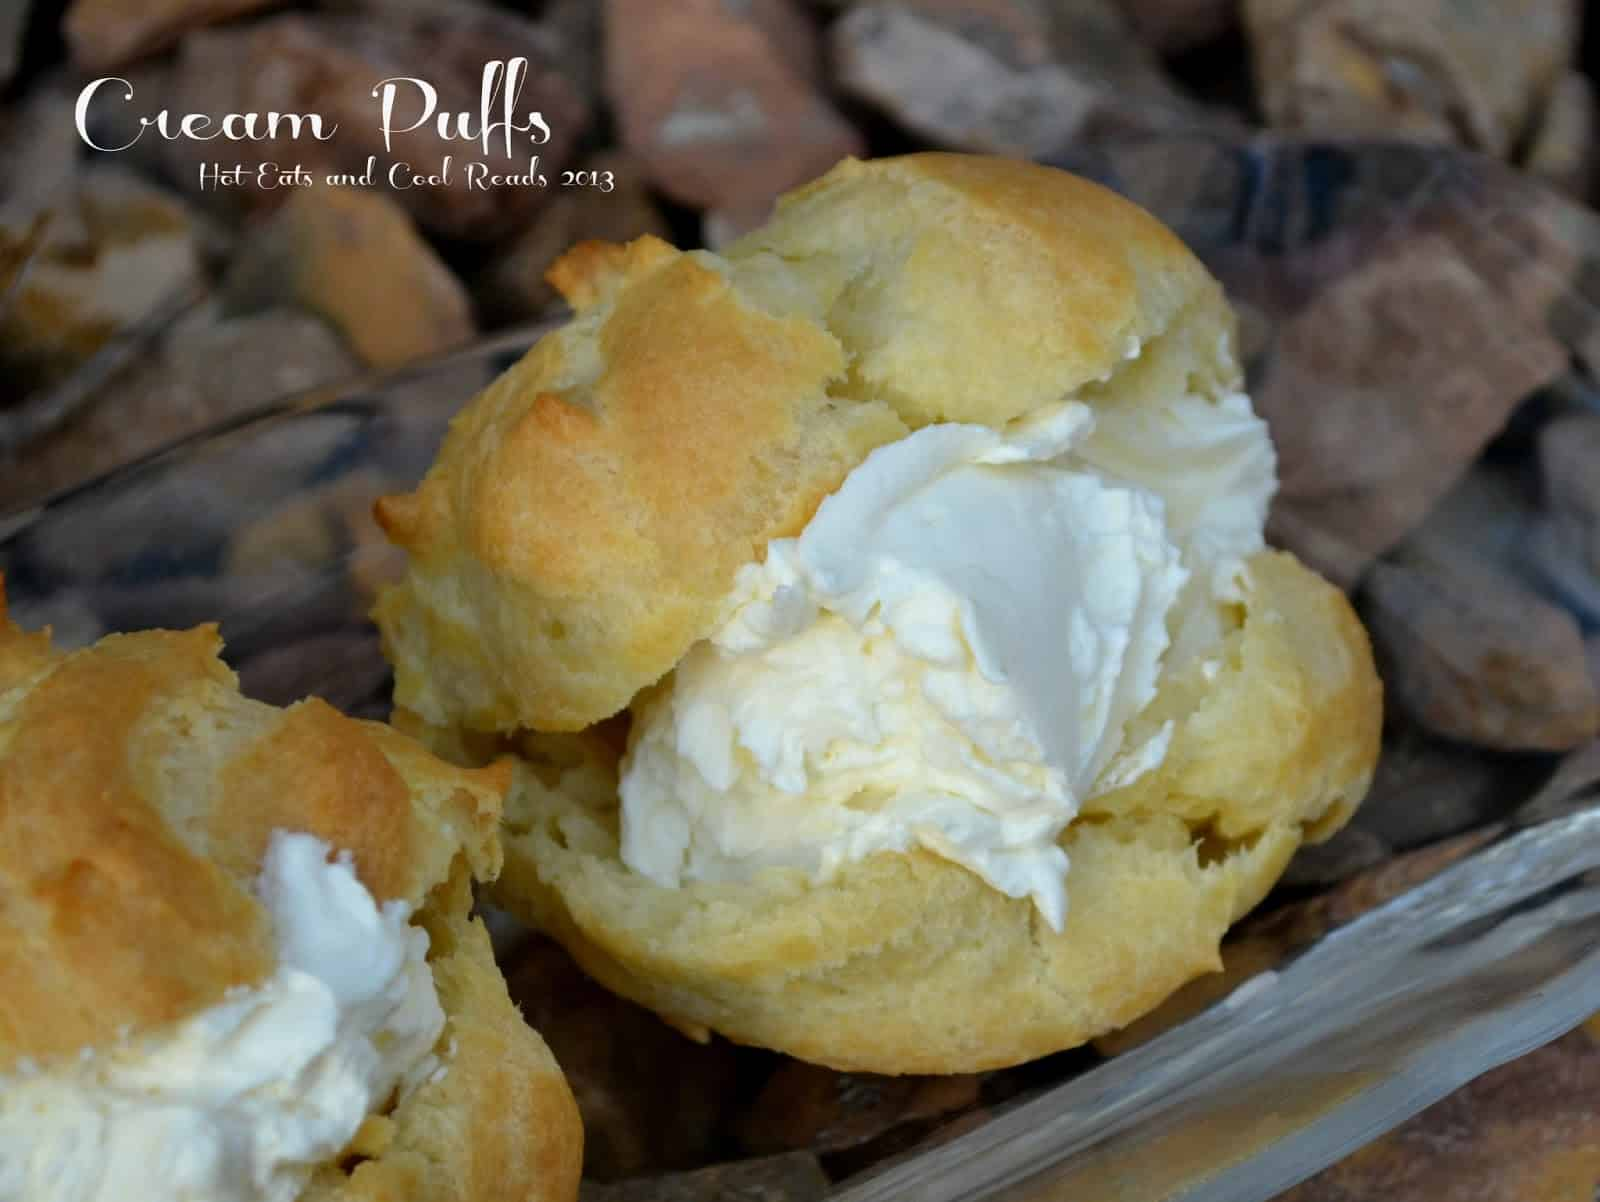 Cream puffs with mascarpone cream